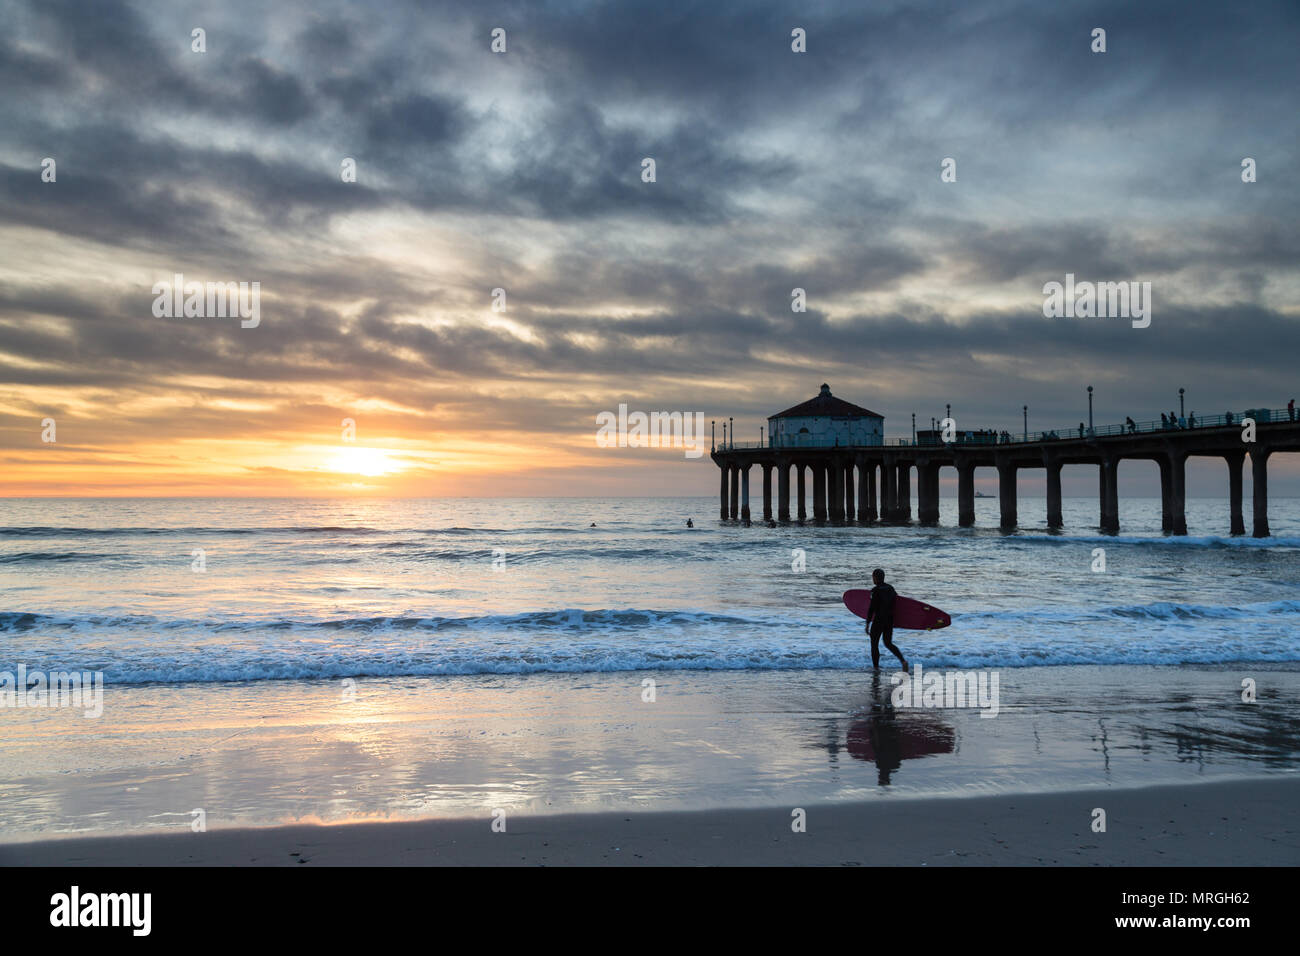 A longboard surfer walks into the ocean next to the Manhattan Beach Pier on a cloudy day, ready to get a few waves before dark. - Stock Image